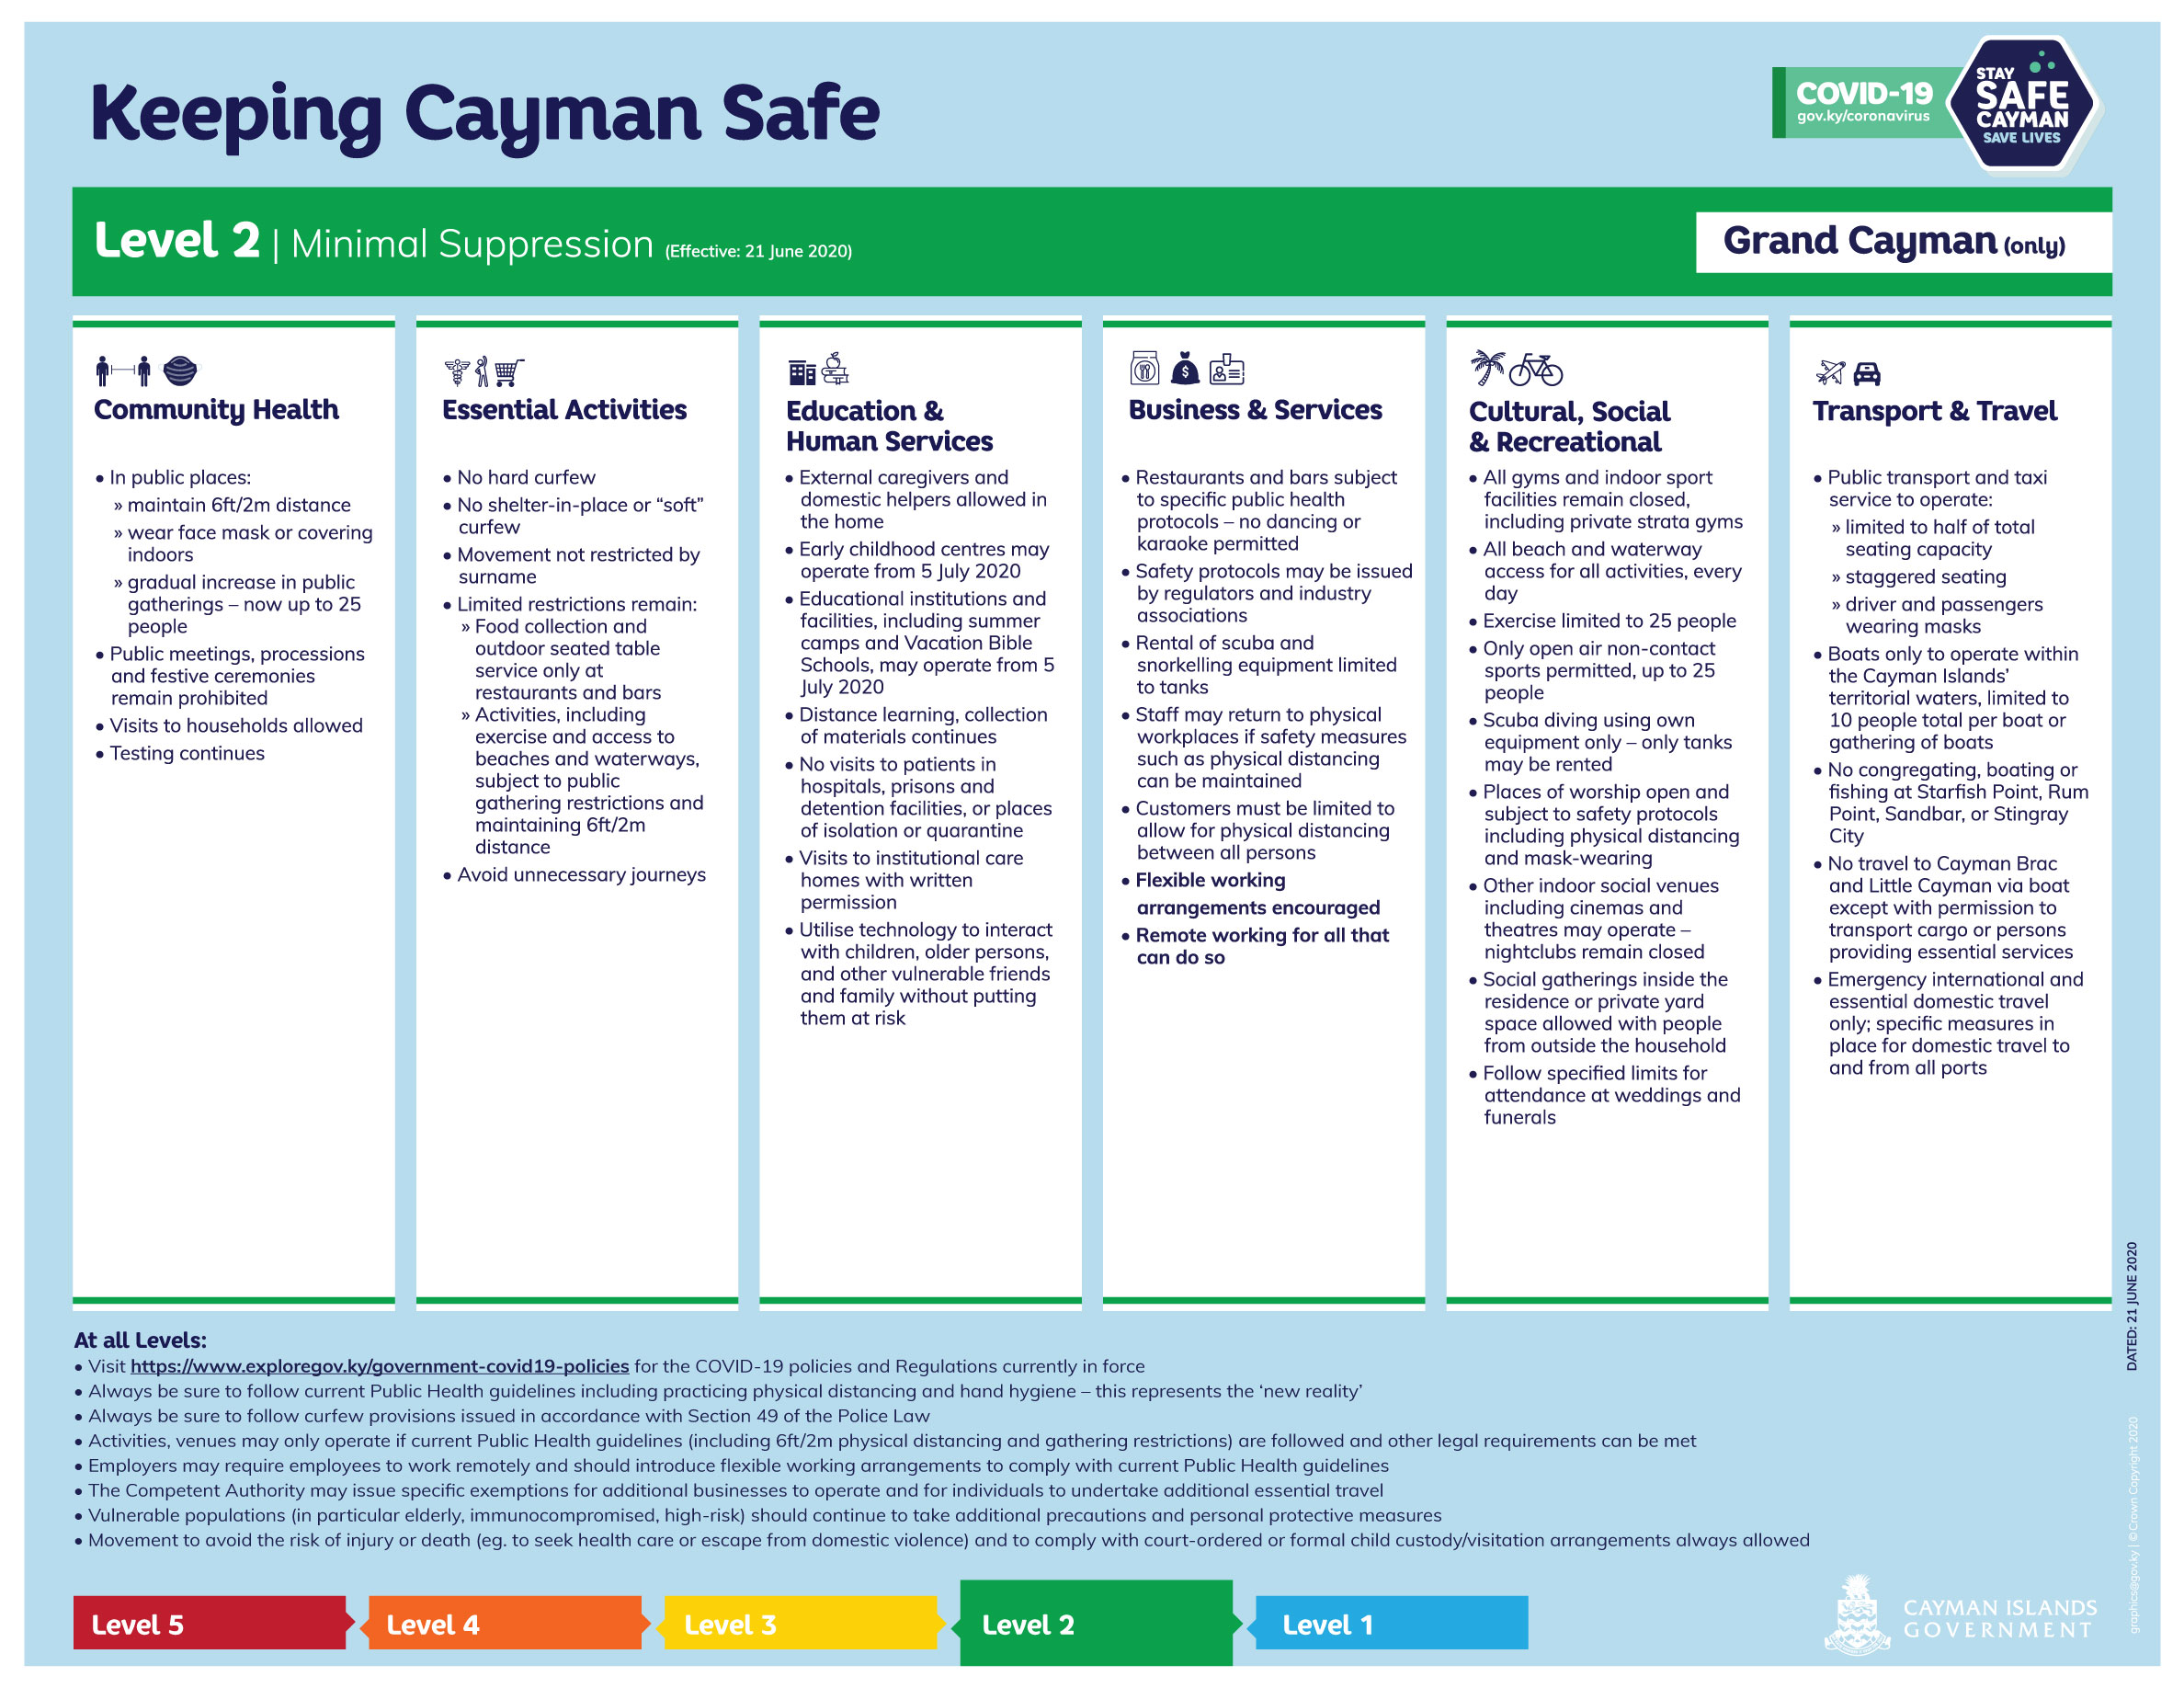 Keeping Cayman Safe - COVID-19 Suppression Level 2 - Grand Cayman only (Effective 21 June 2020)